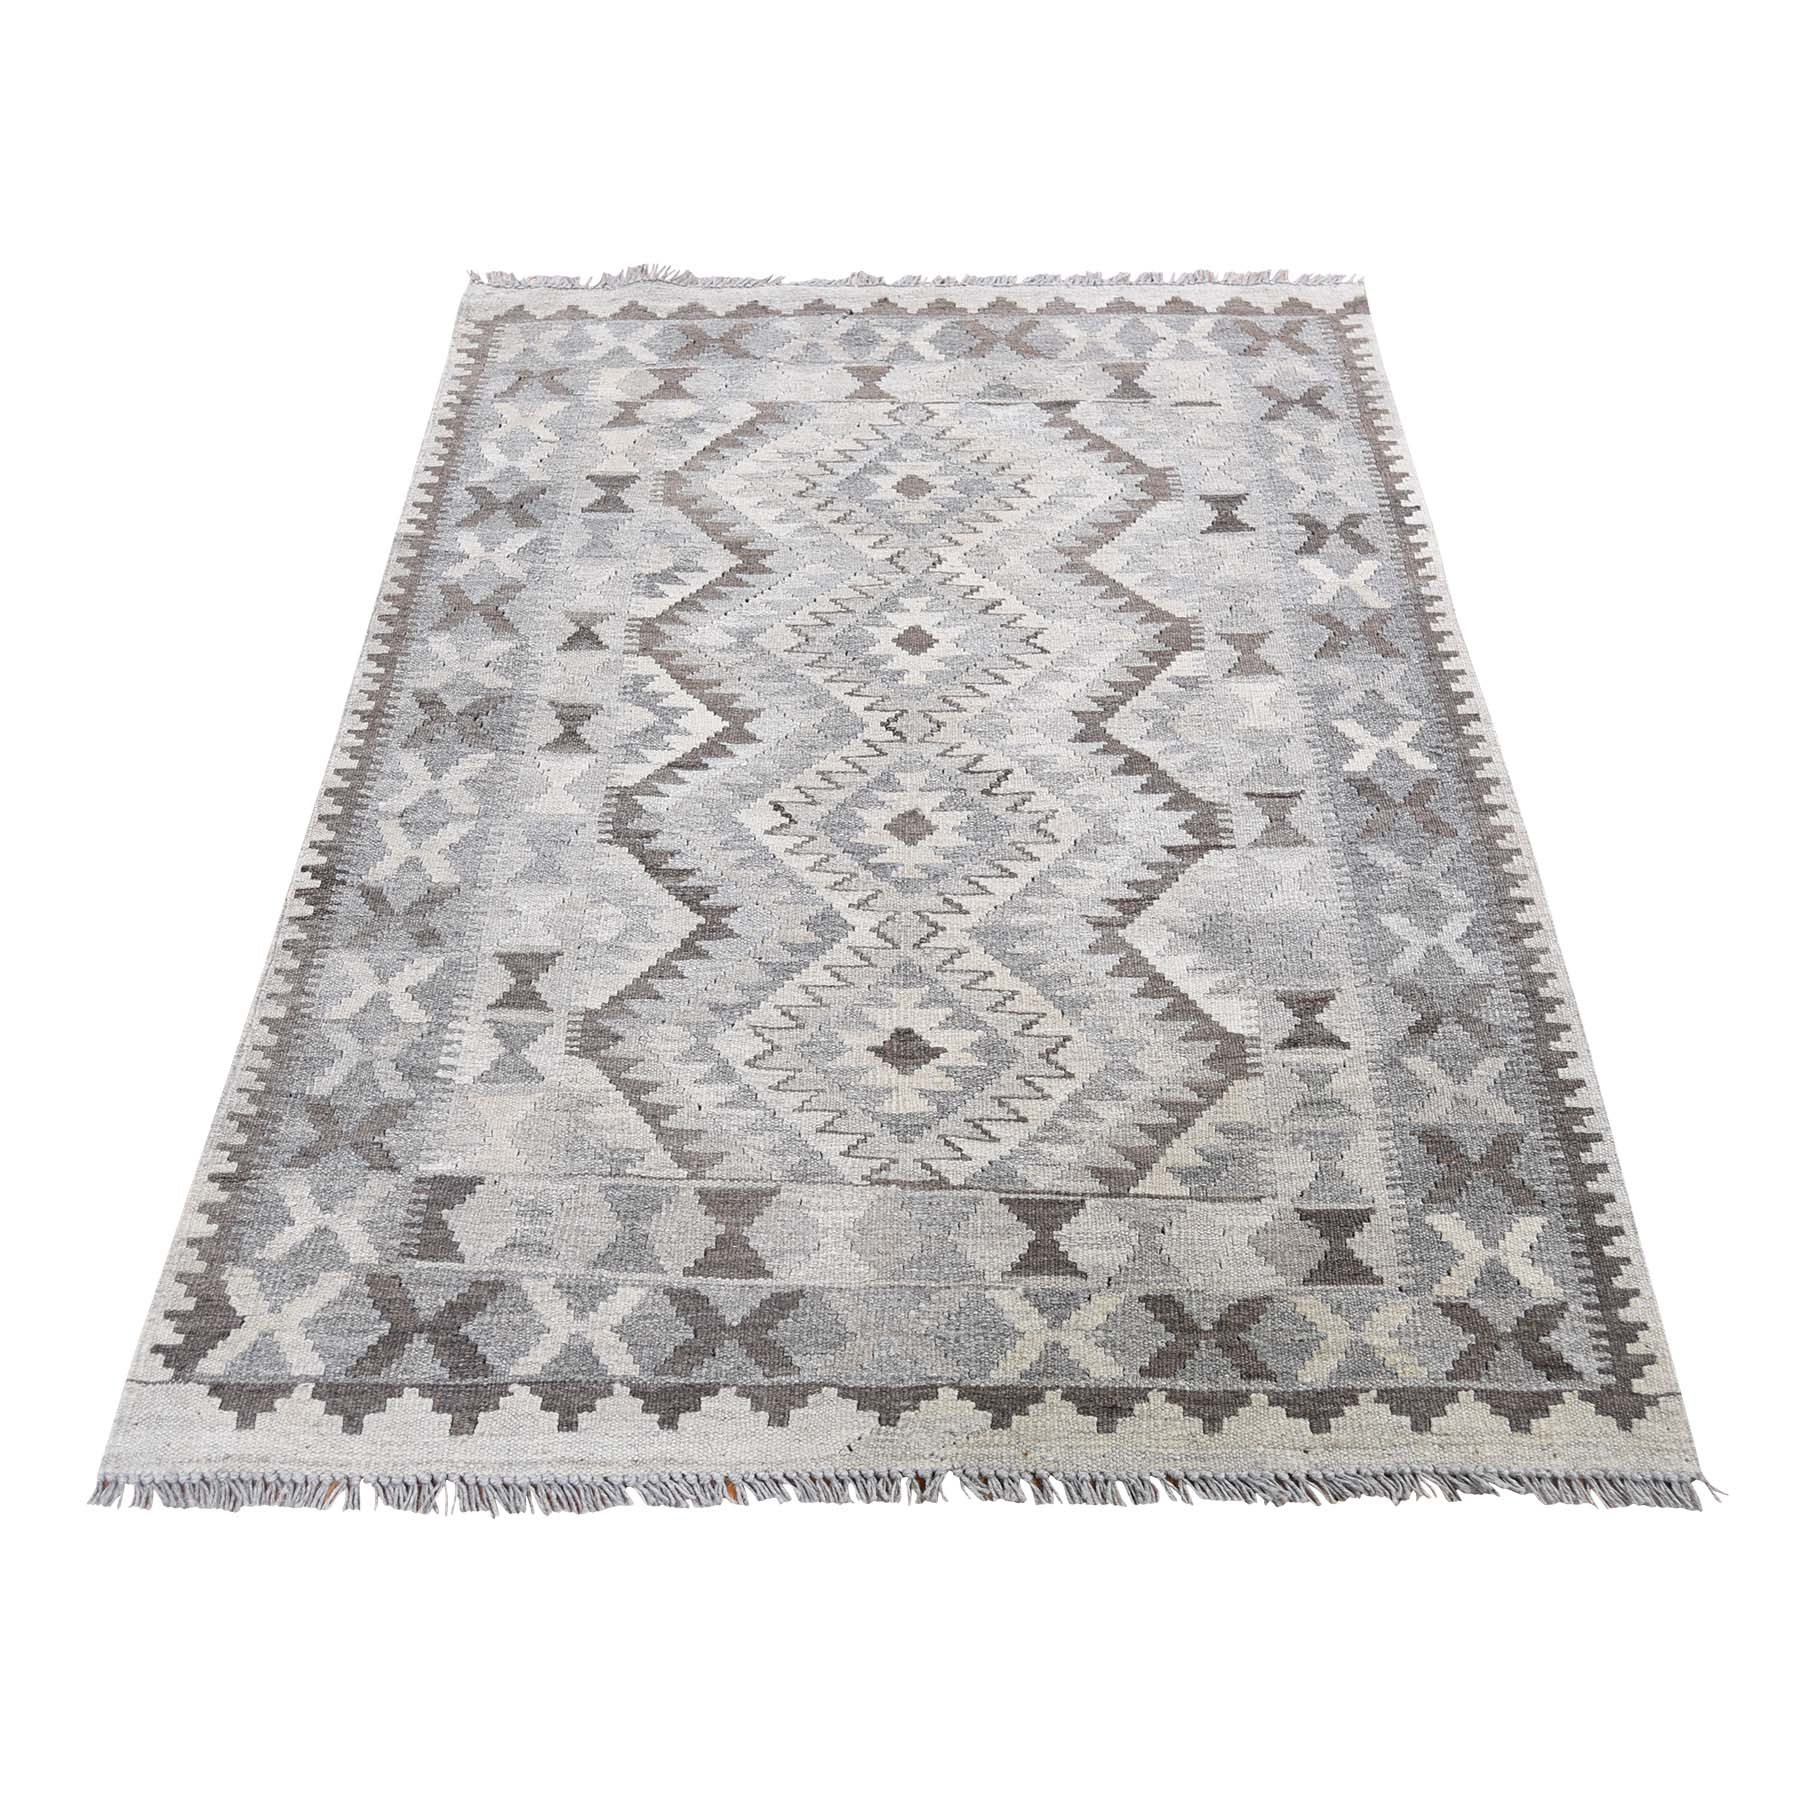 "3'1""X4'9"" Undyed Natural Wool Afghan Kilim Reversible Hand Woven Oriental Rug moad66aa"